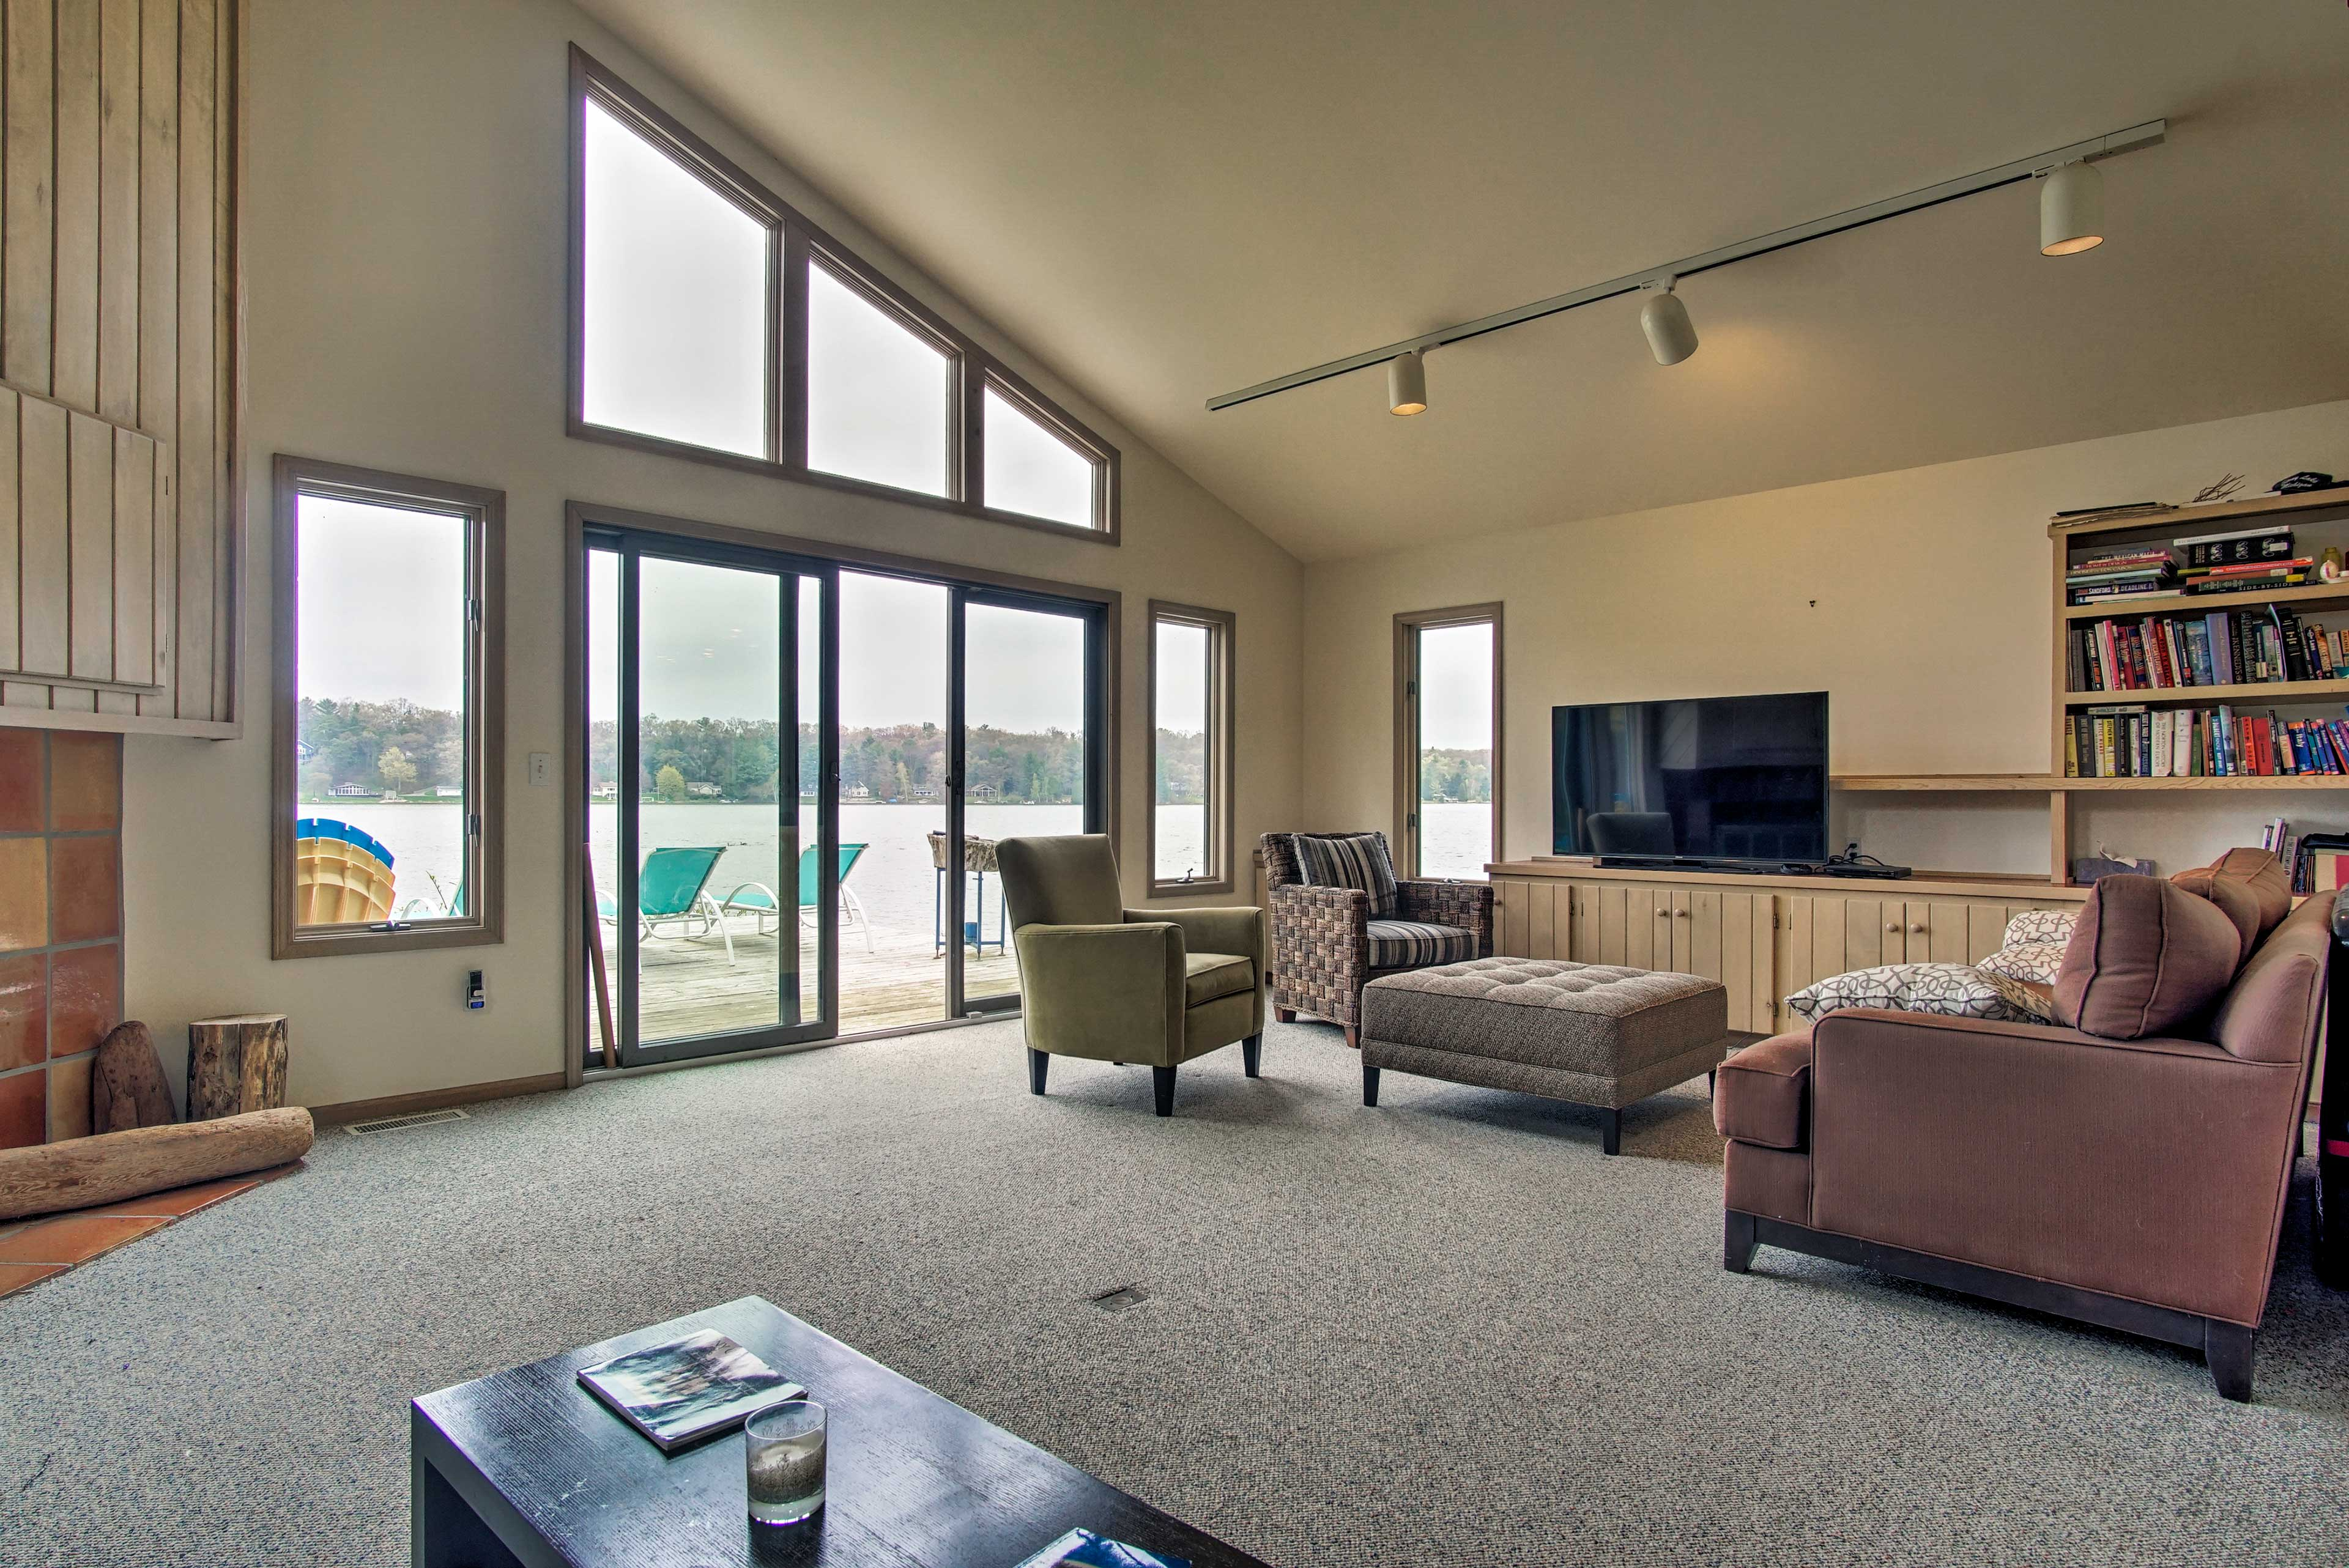 Enjoy majestic lake views right from the comfortable living room.